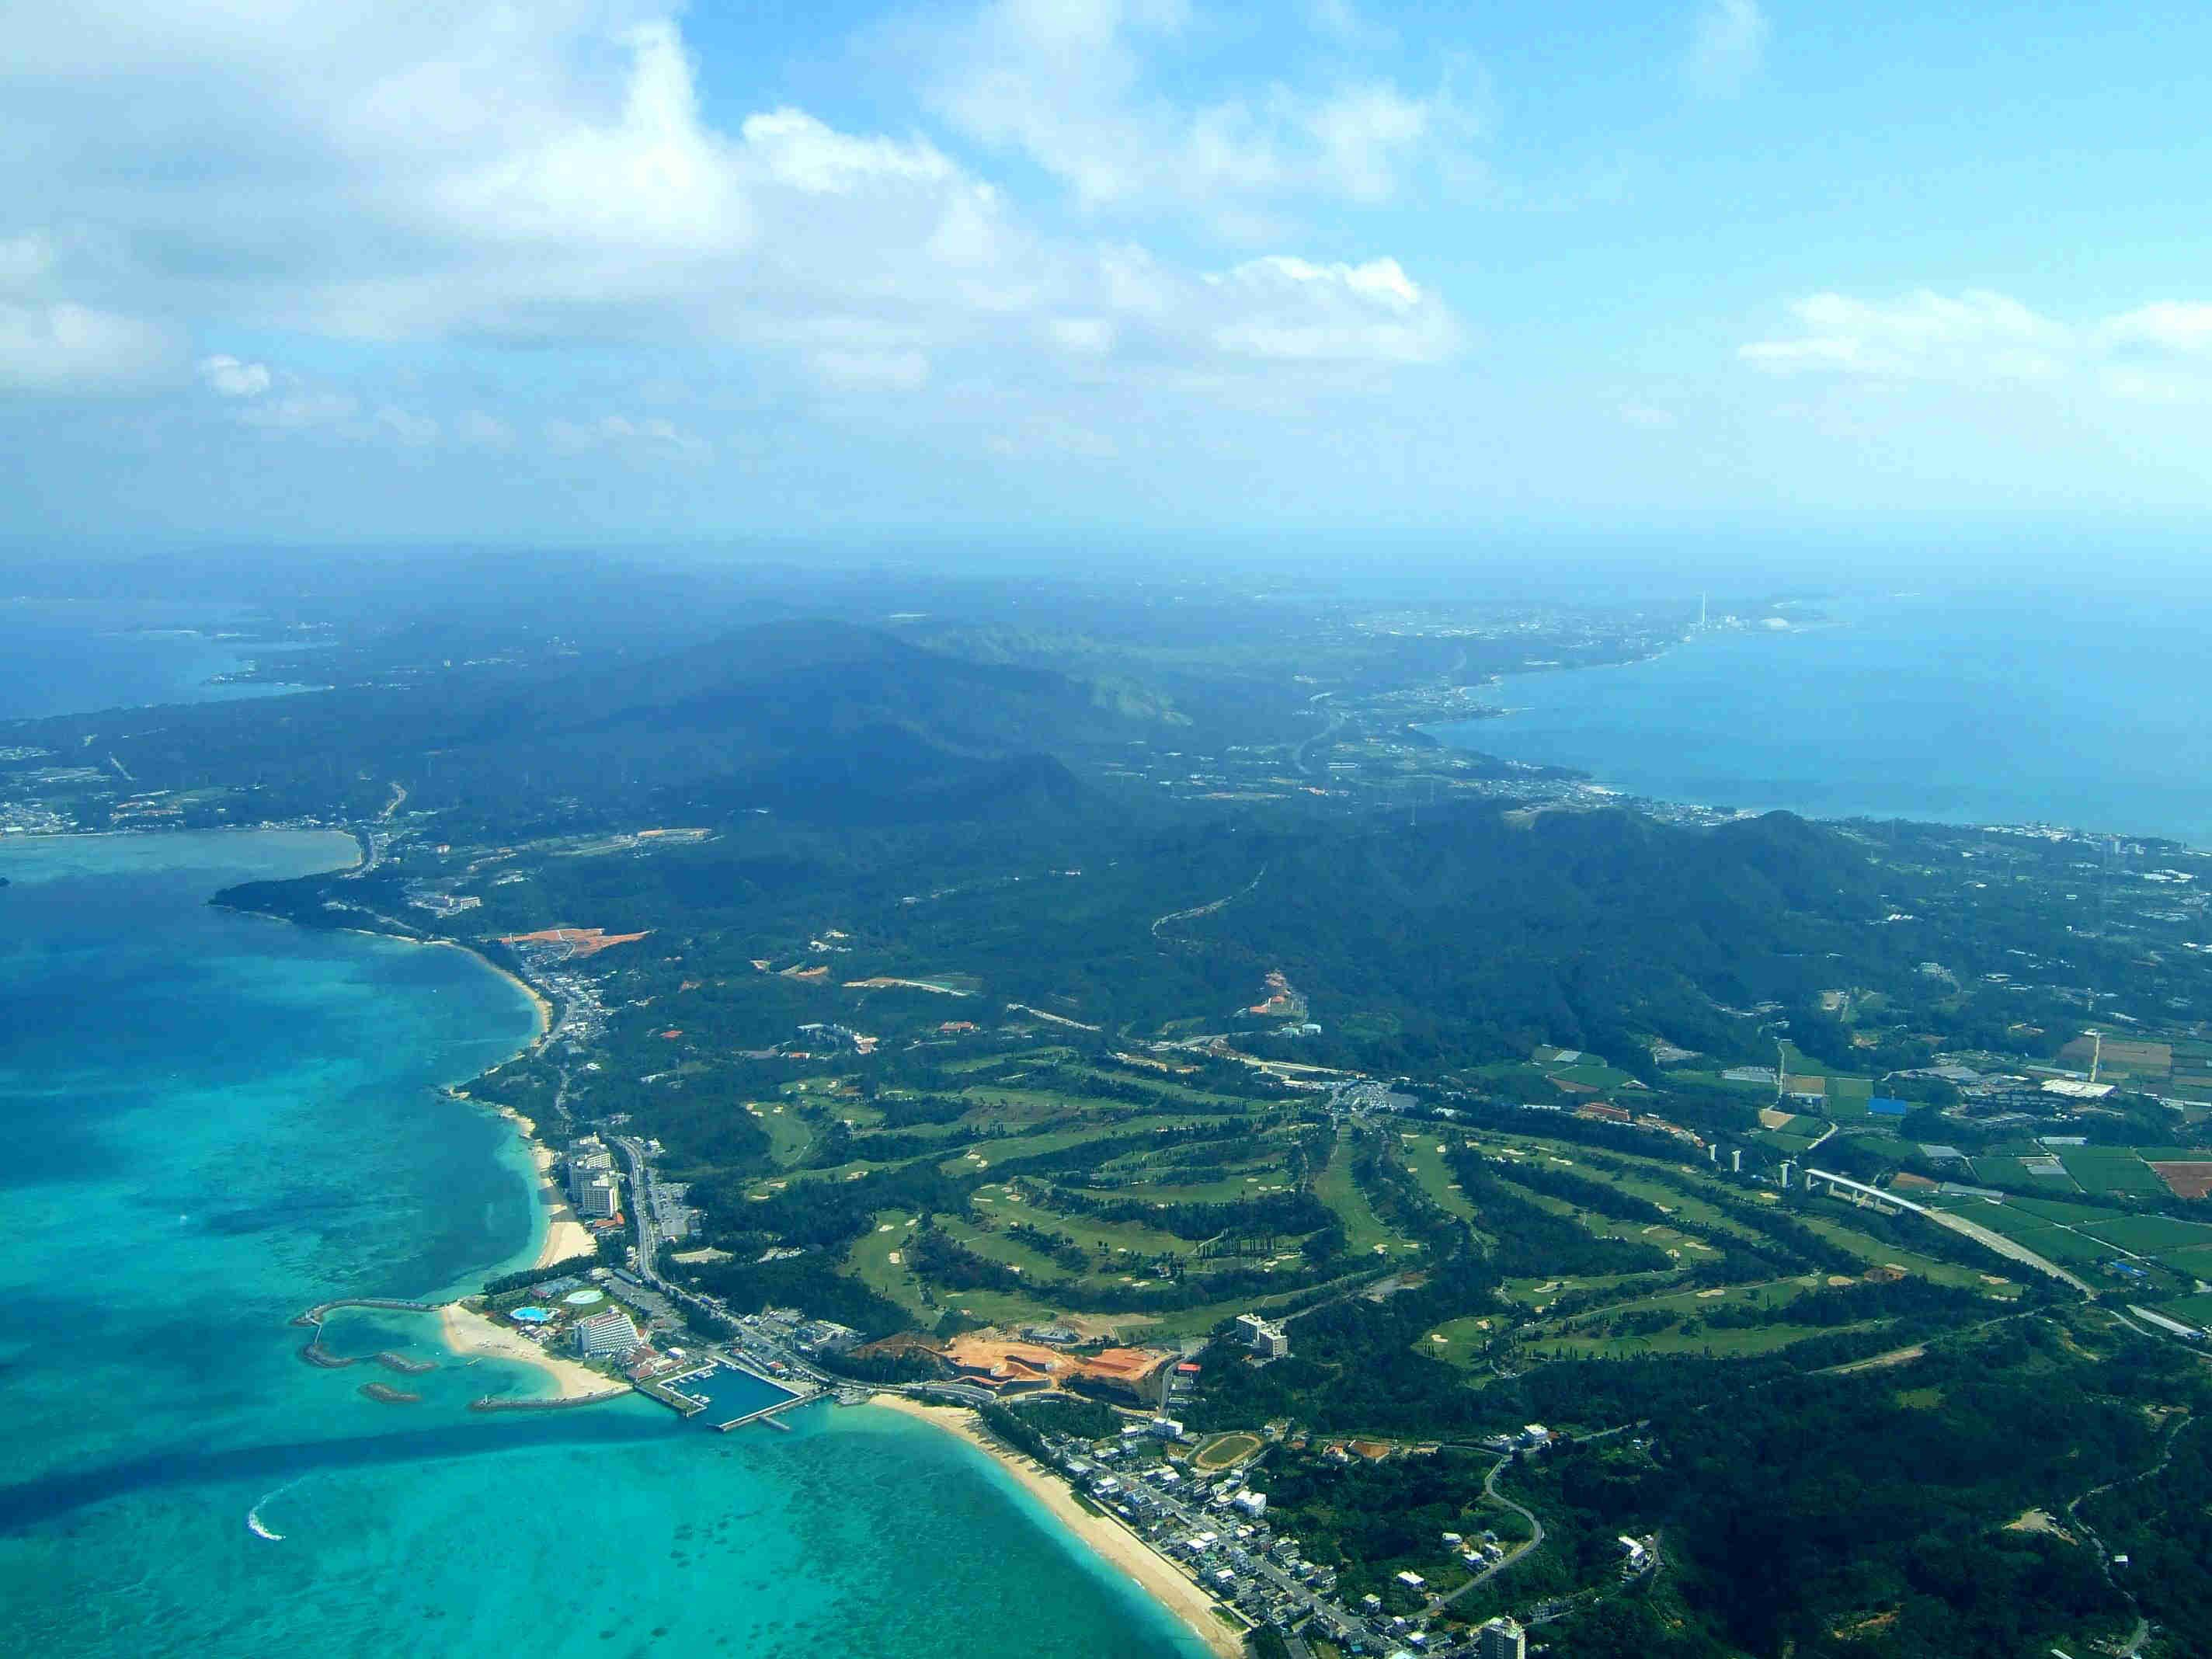 Okinawa, Japan. Was born there, but since dad was transferred home ...